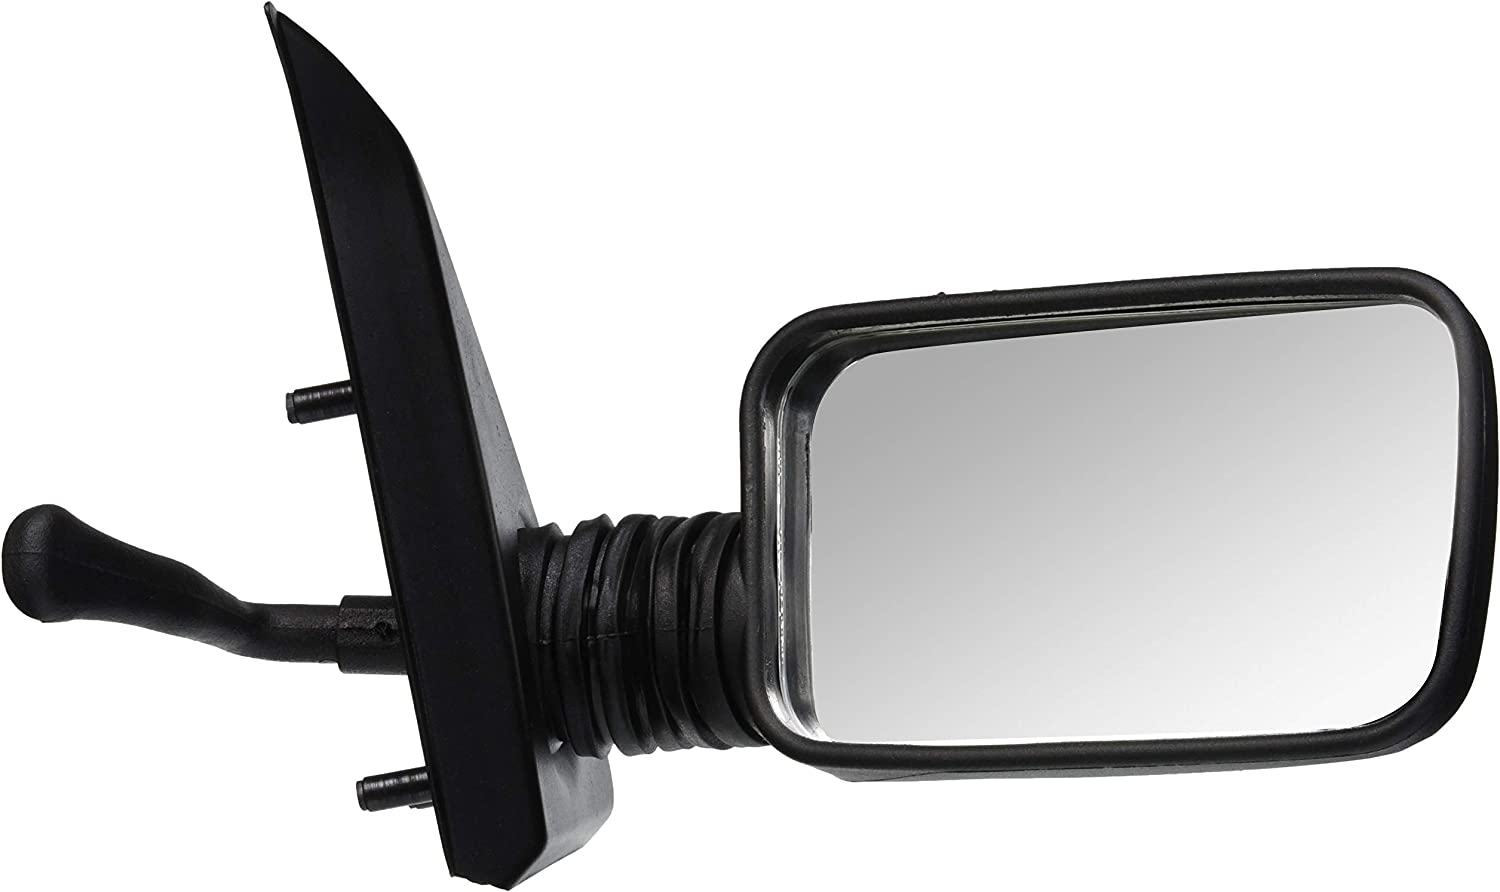 Melchioni 337010457/Electric Rearview for Car